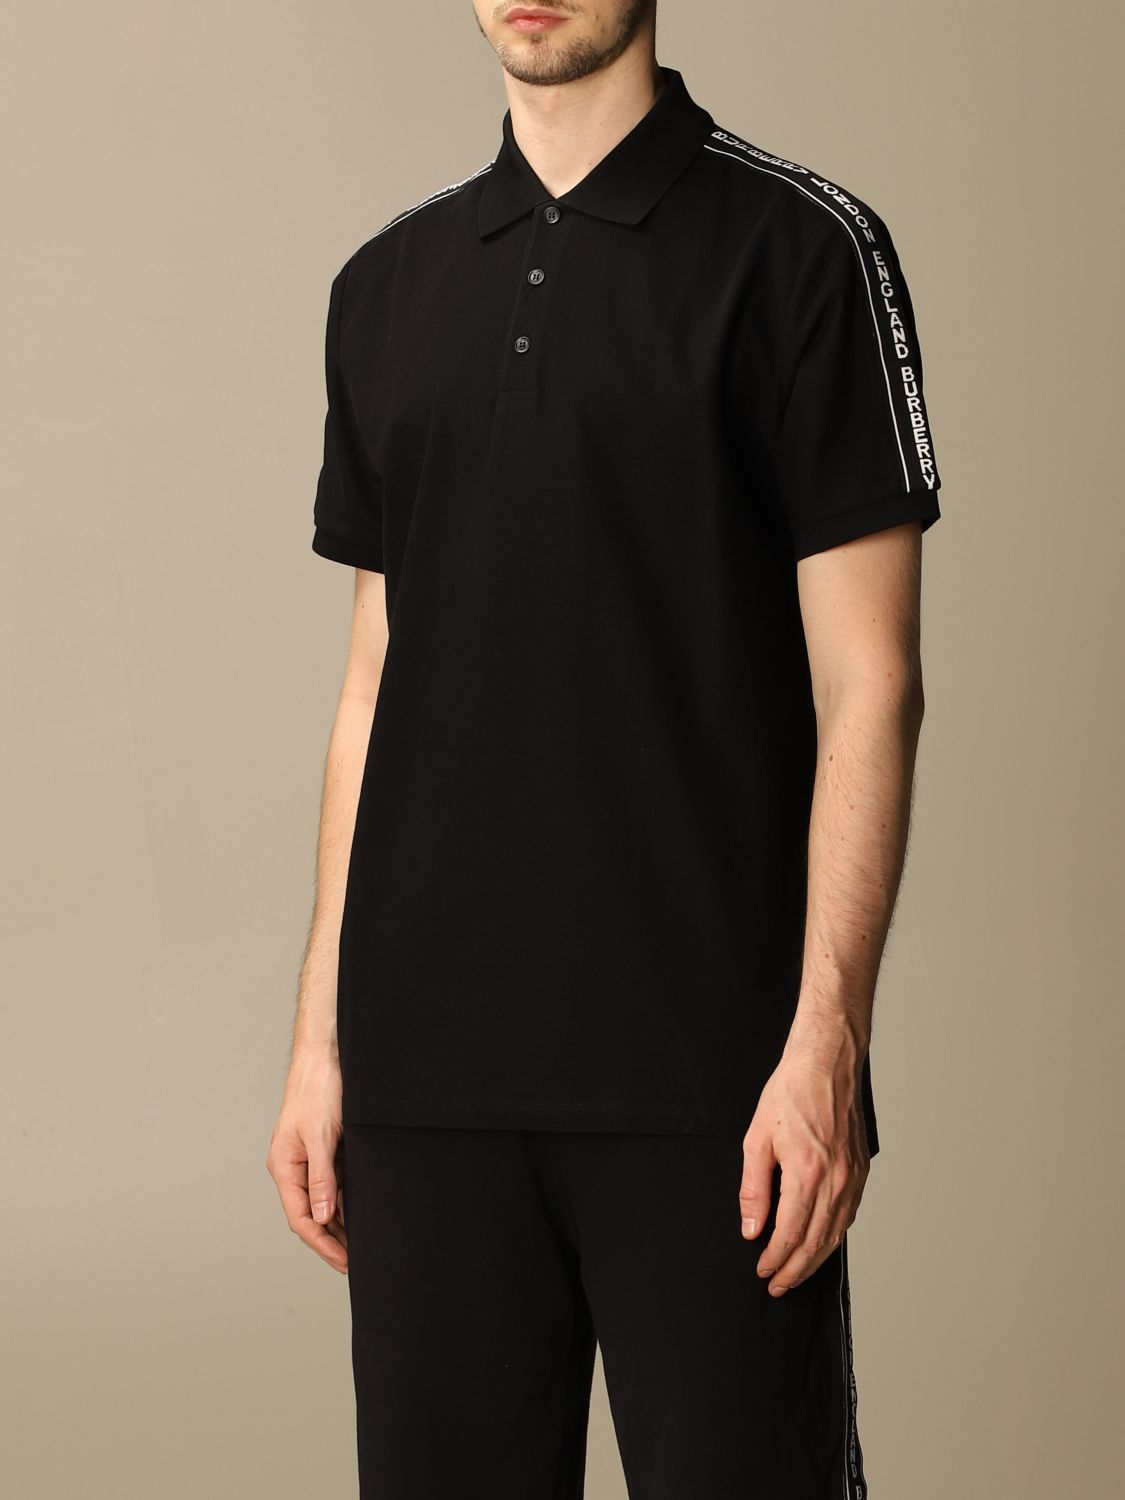 Polo shirt Burberry: Stonely Burberry polo shirt in piqué cotton with logoed bands black 4